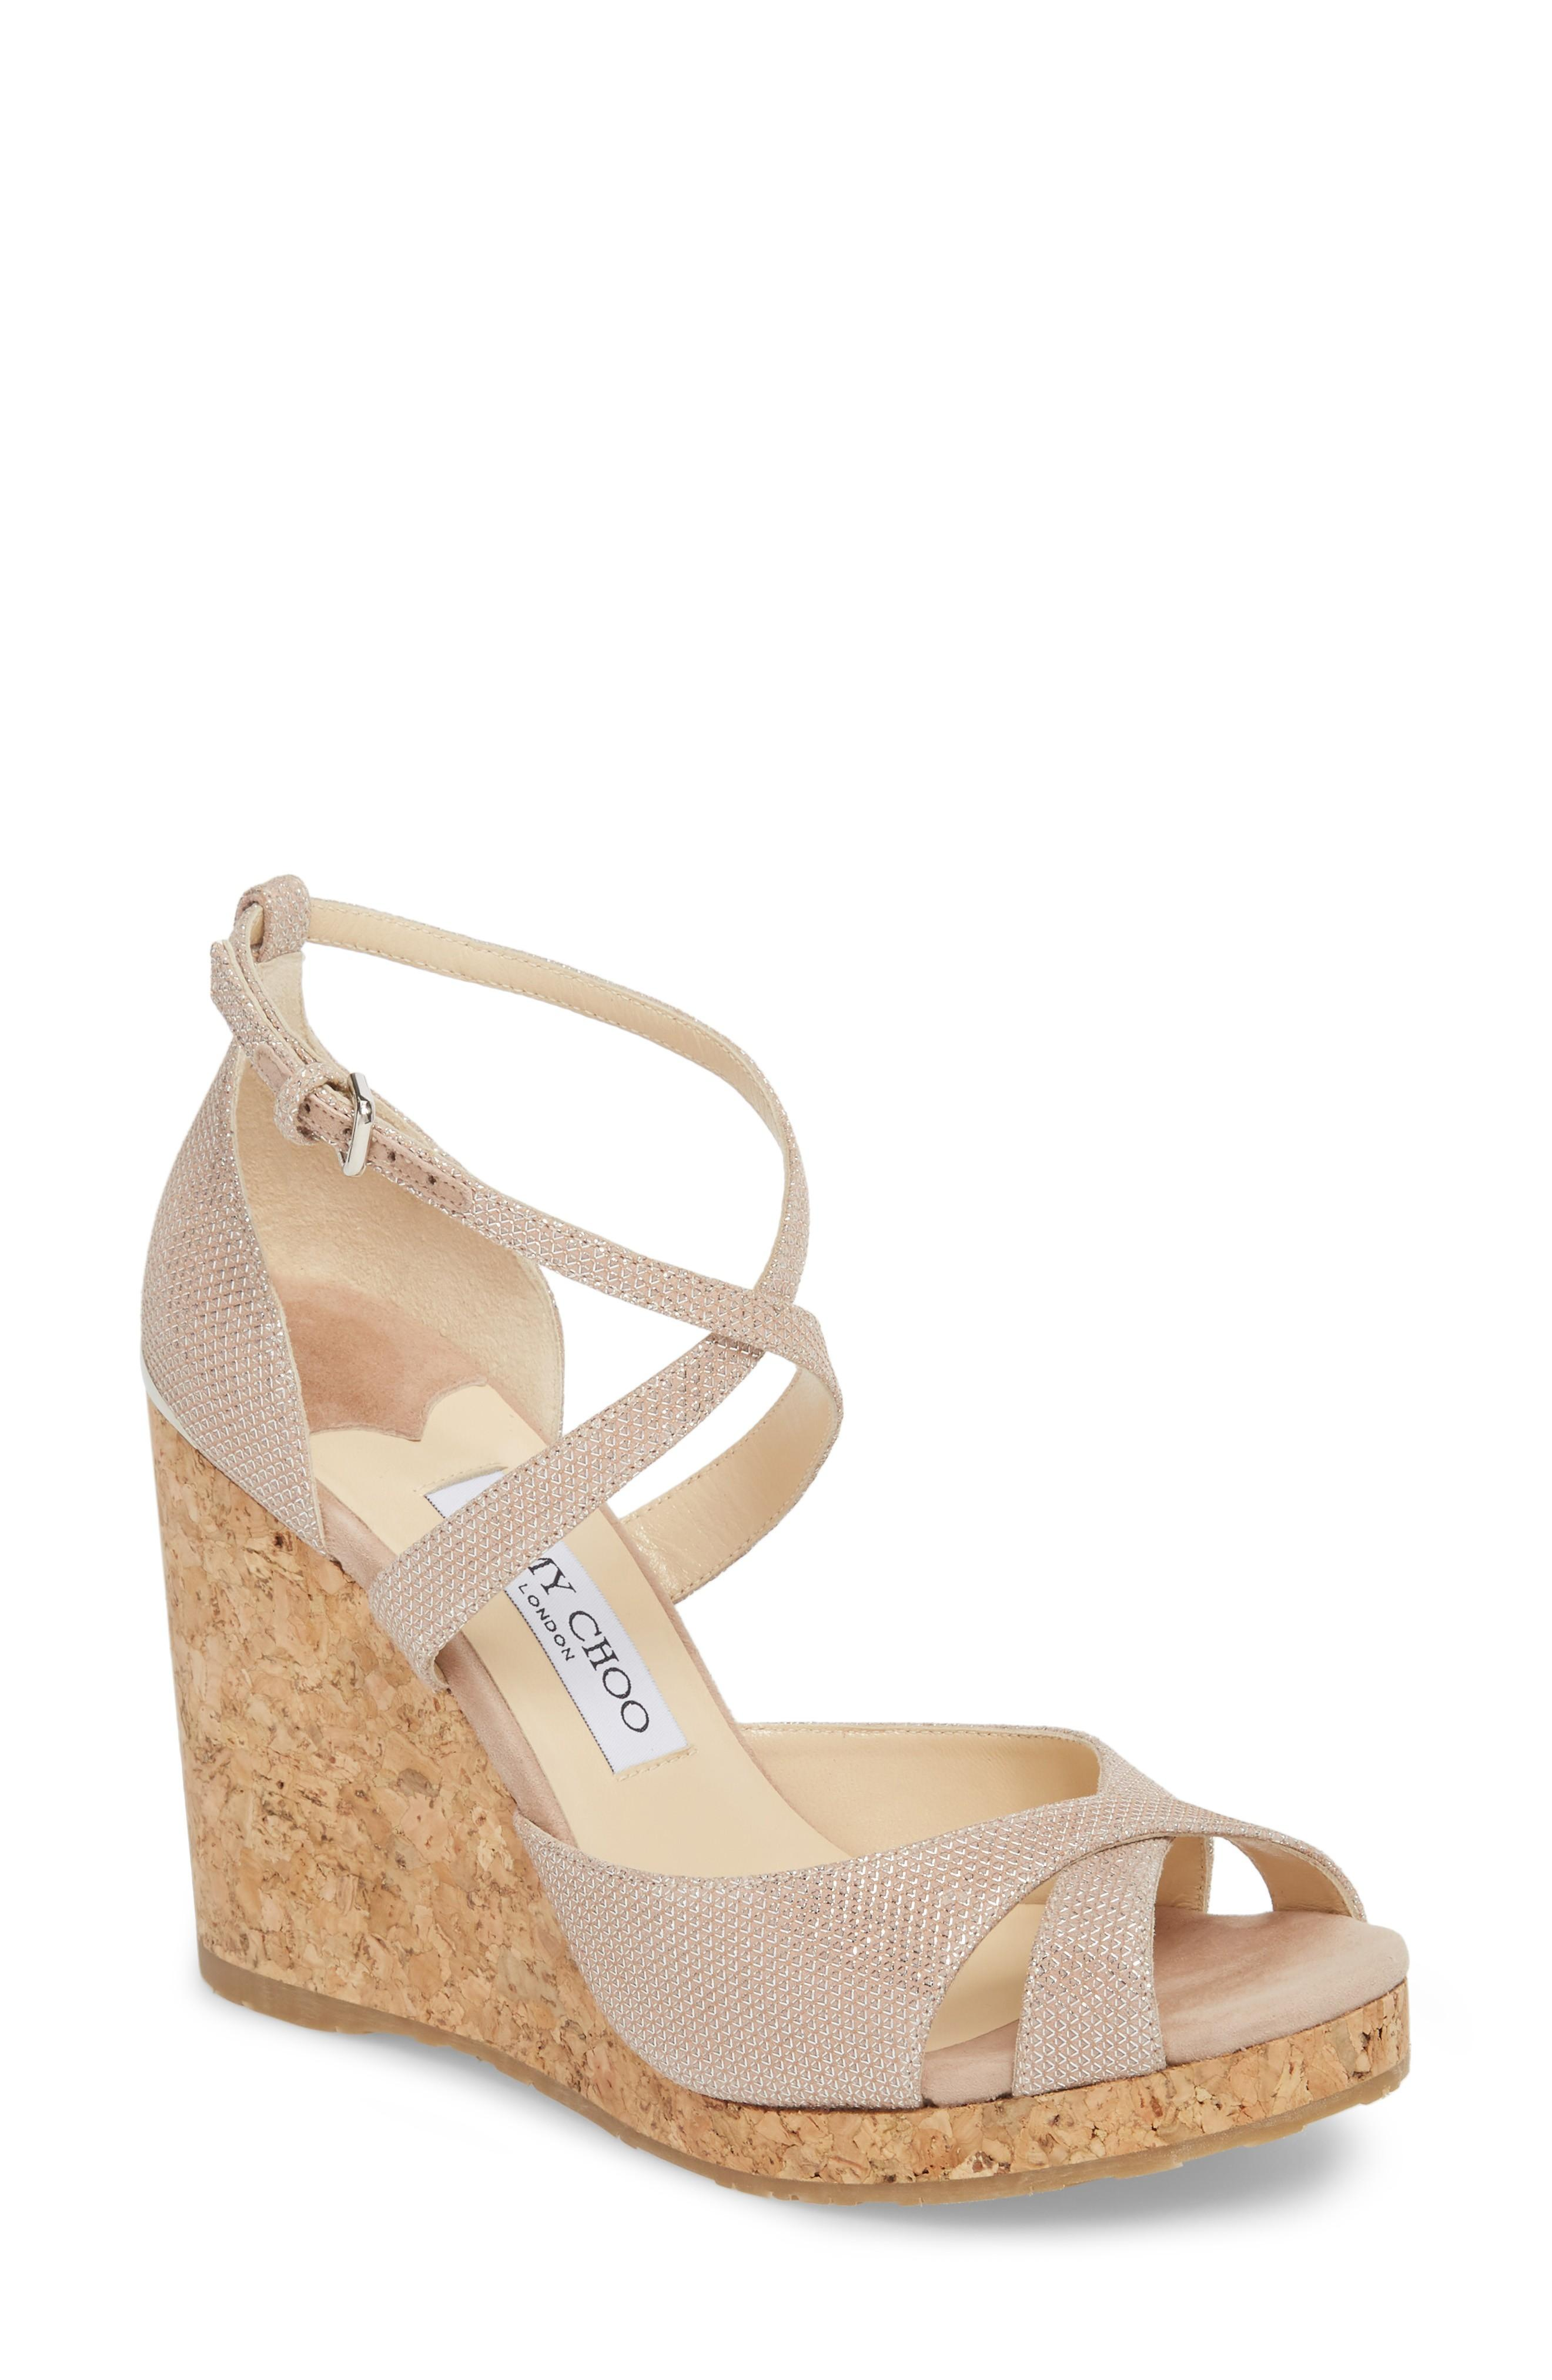 0489183f9fb Espadrille-style detailing at the cork wedge and crisscrossing straps make  this sandal an instant summer classic. Style Name  Jimmy Choo Alanah  Espadrille ...